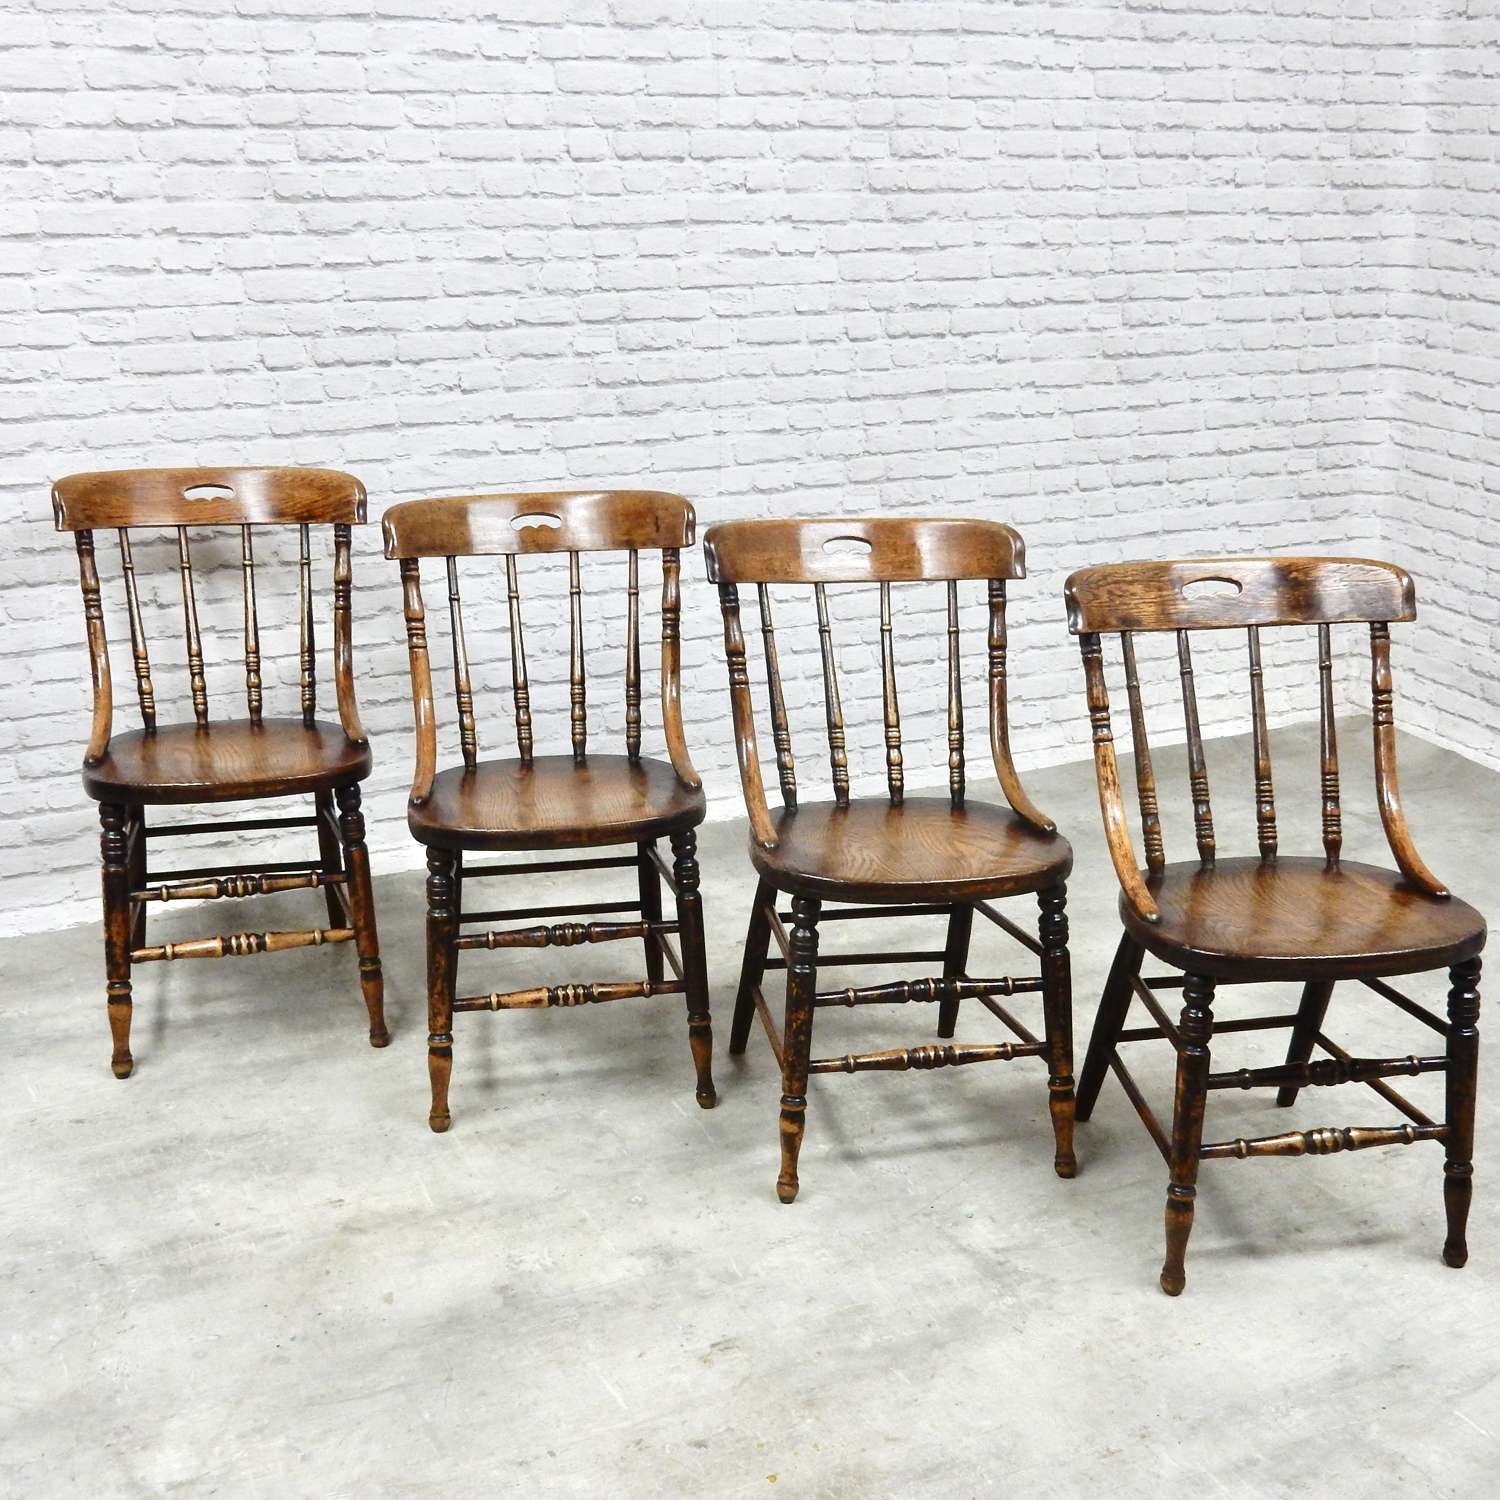 Set 4 Antique Country Kitchen Chairs